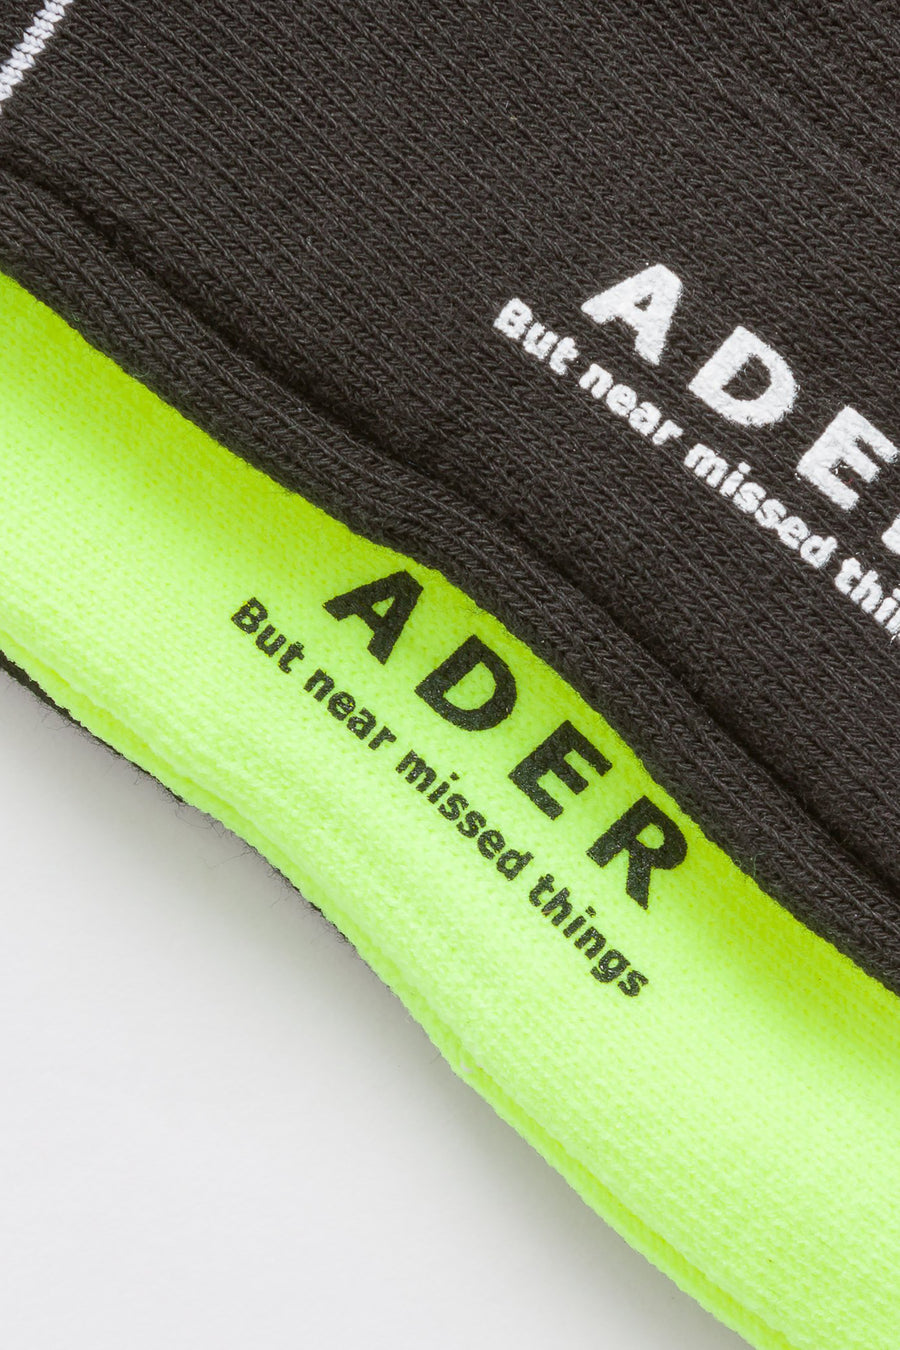 Adererror Ade Sock in Black/Neon Green - Notre